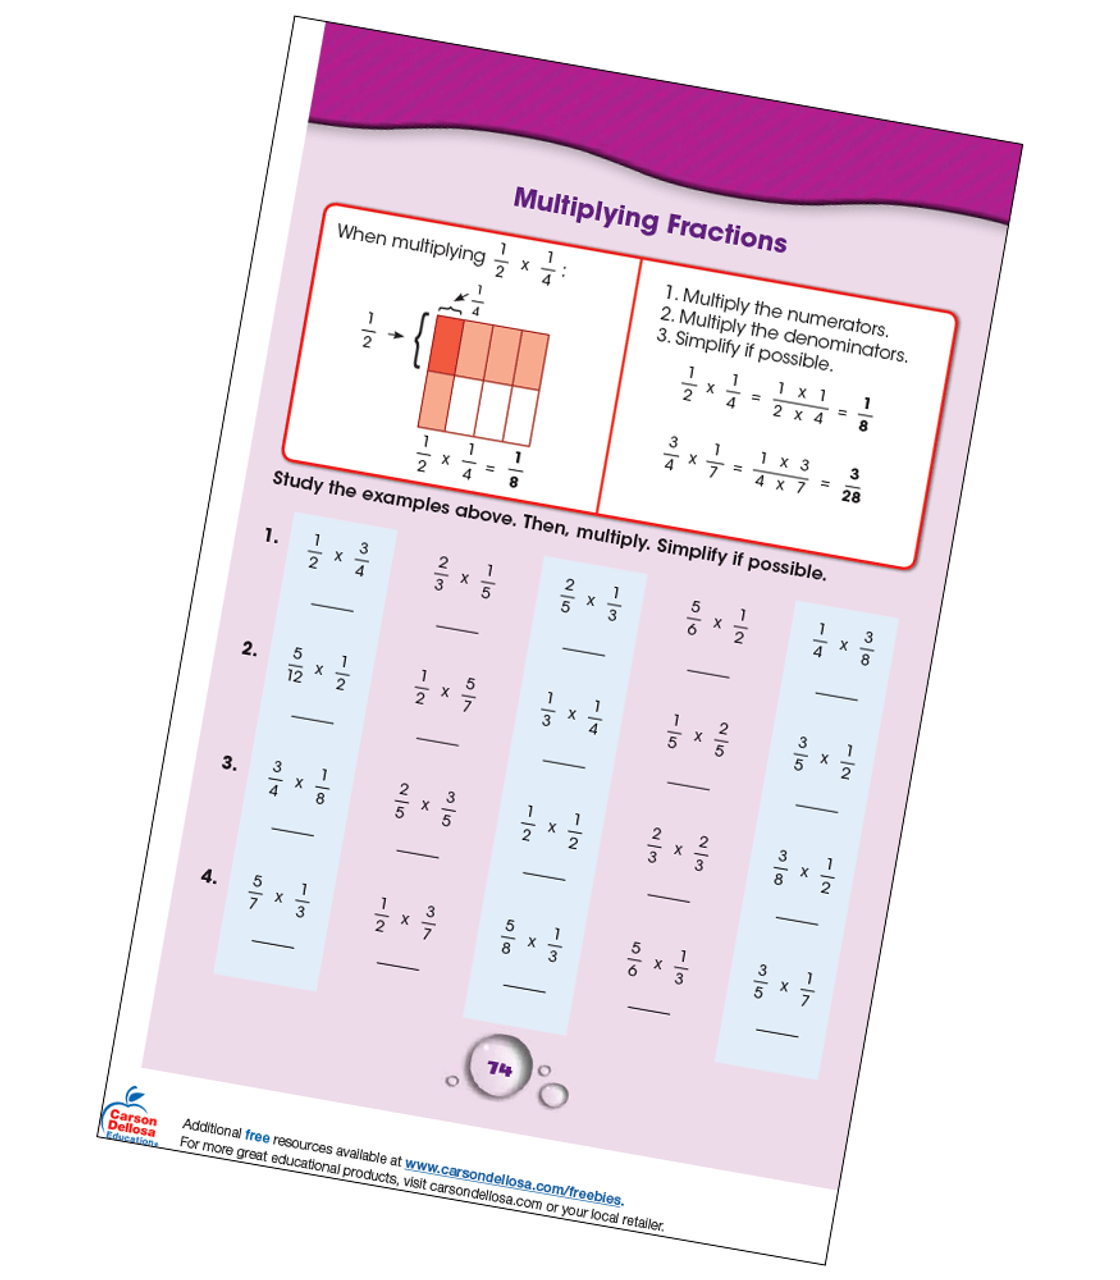 small resolution of Multiplying Fractions Grade 4-5 Free Printable   Carson Dellosa